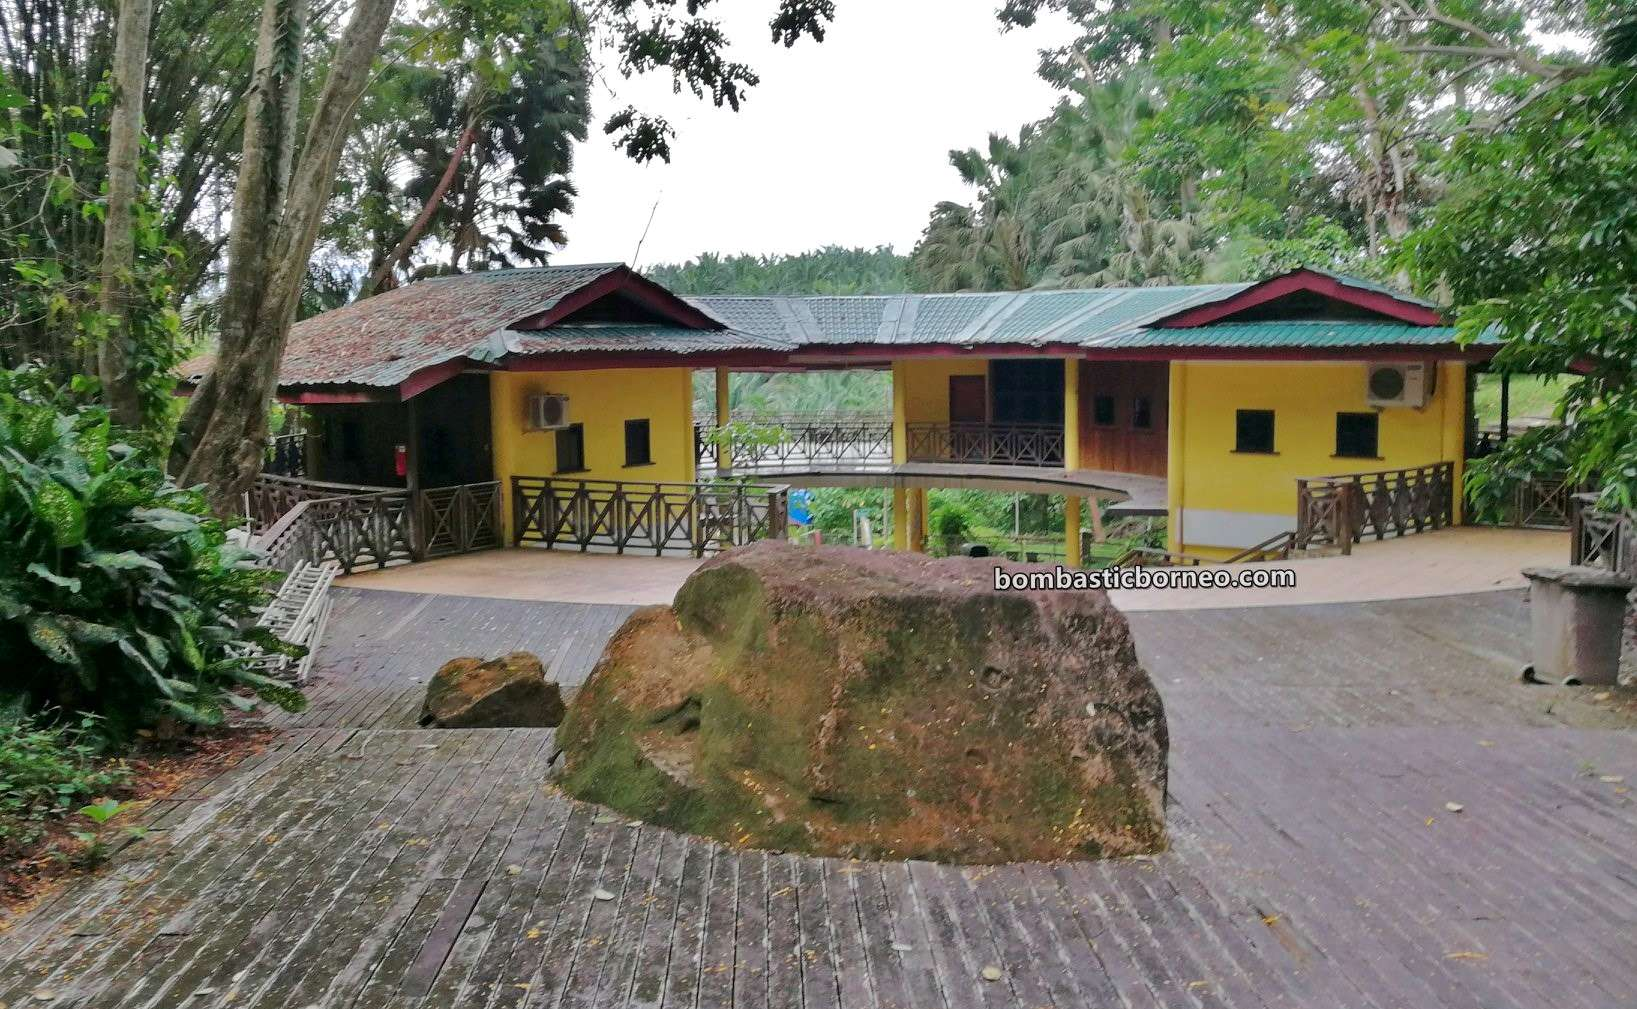 Pusat Sejadi Bukit Gemok, Gemok Hill Forest Reserve, rainforest, primary jungle, conservation, exploration, backpackers, destination, Hutan simpan, Tawau, Malaysia, Sabah, tourist attraction, travel guide, Trans Borneo,